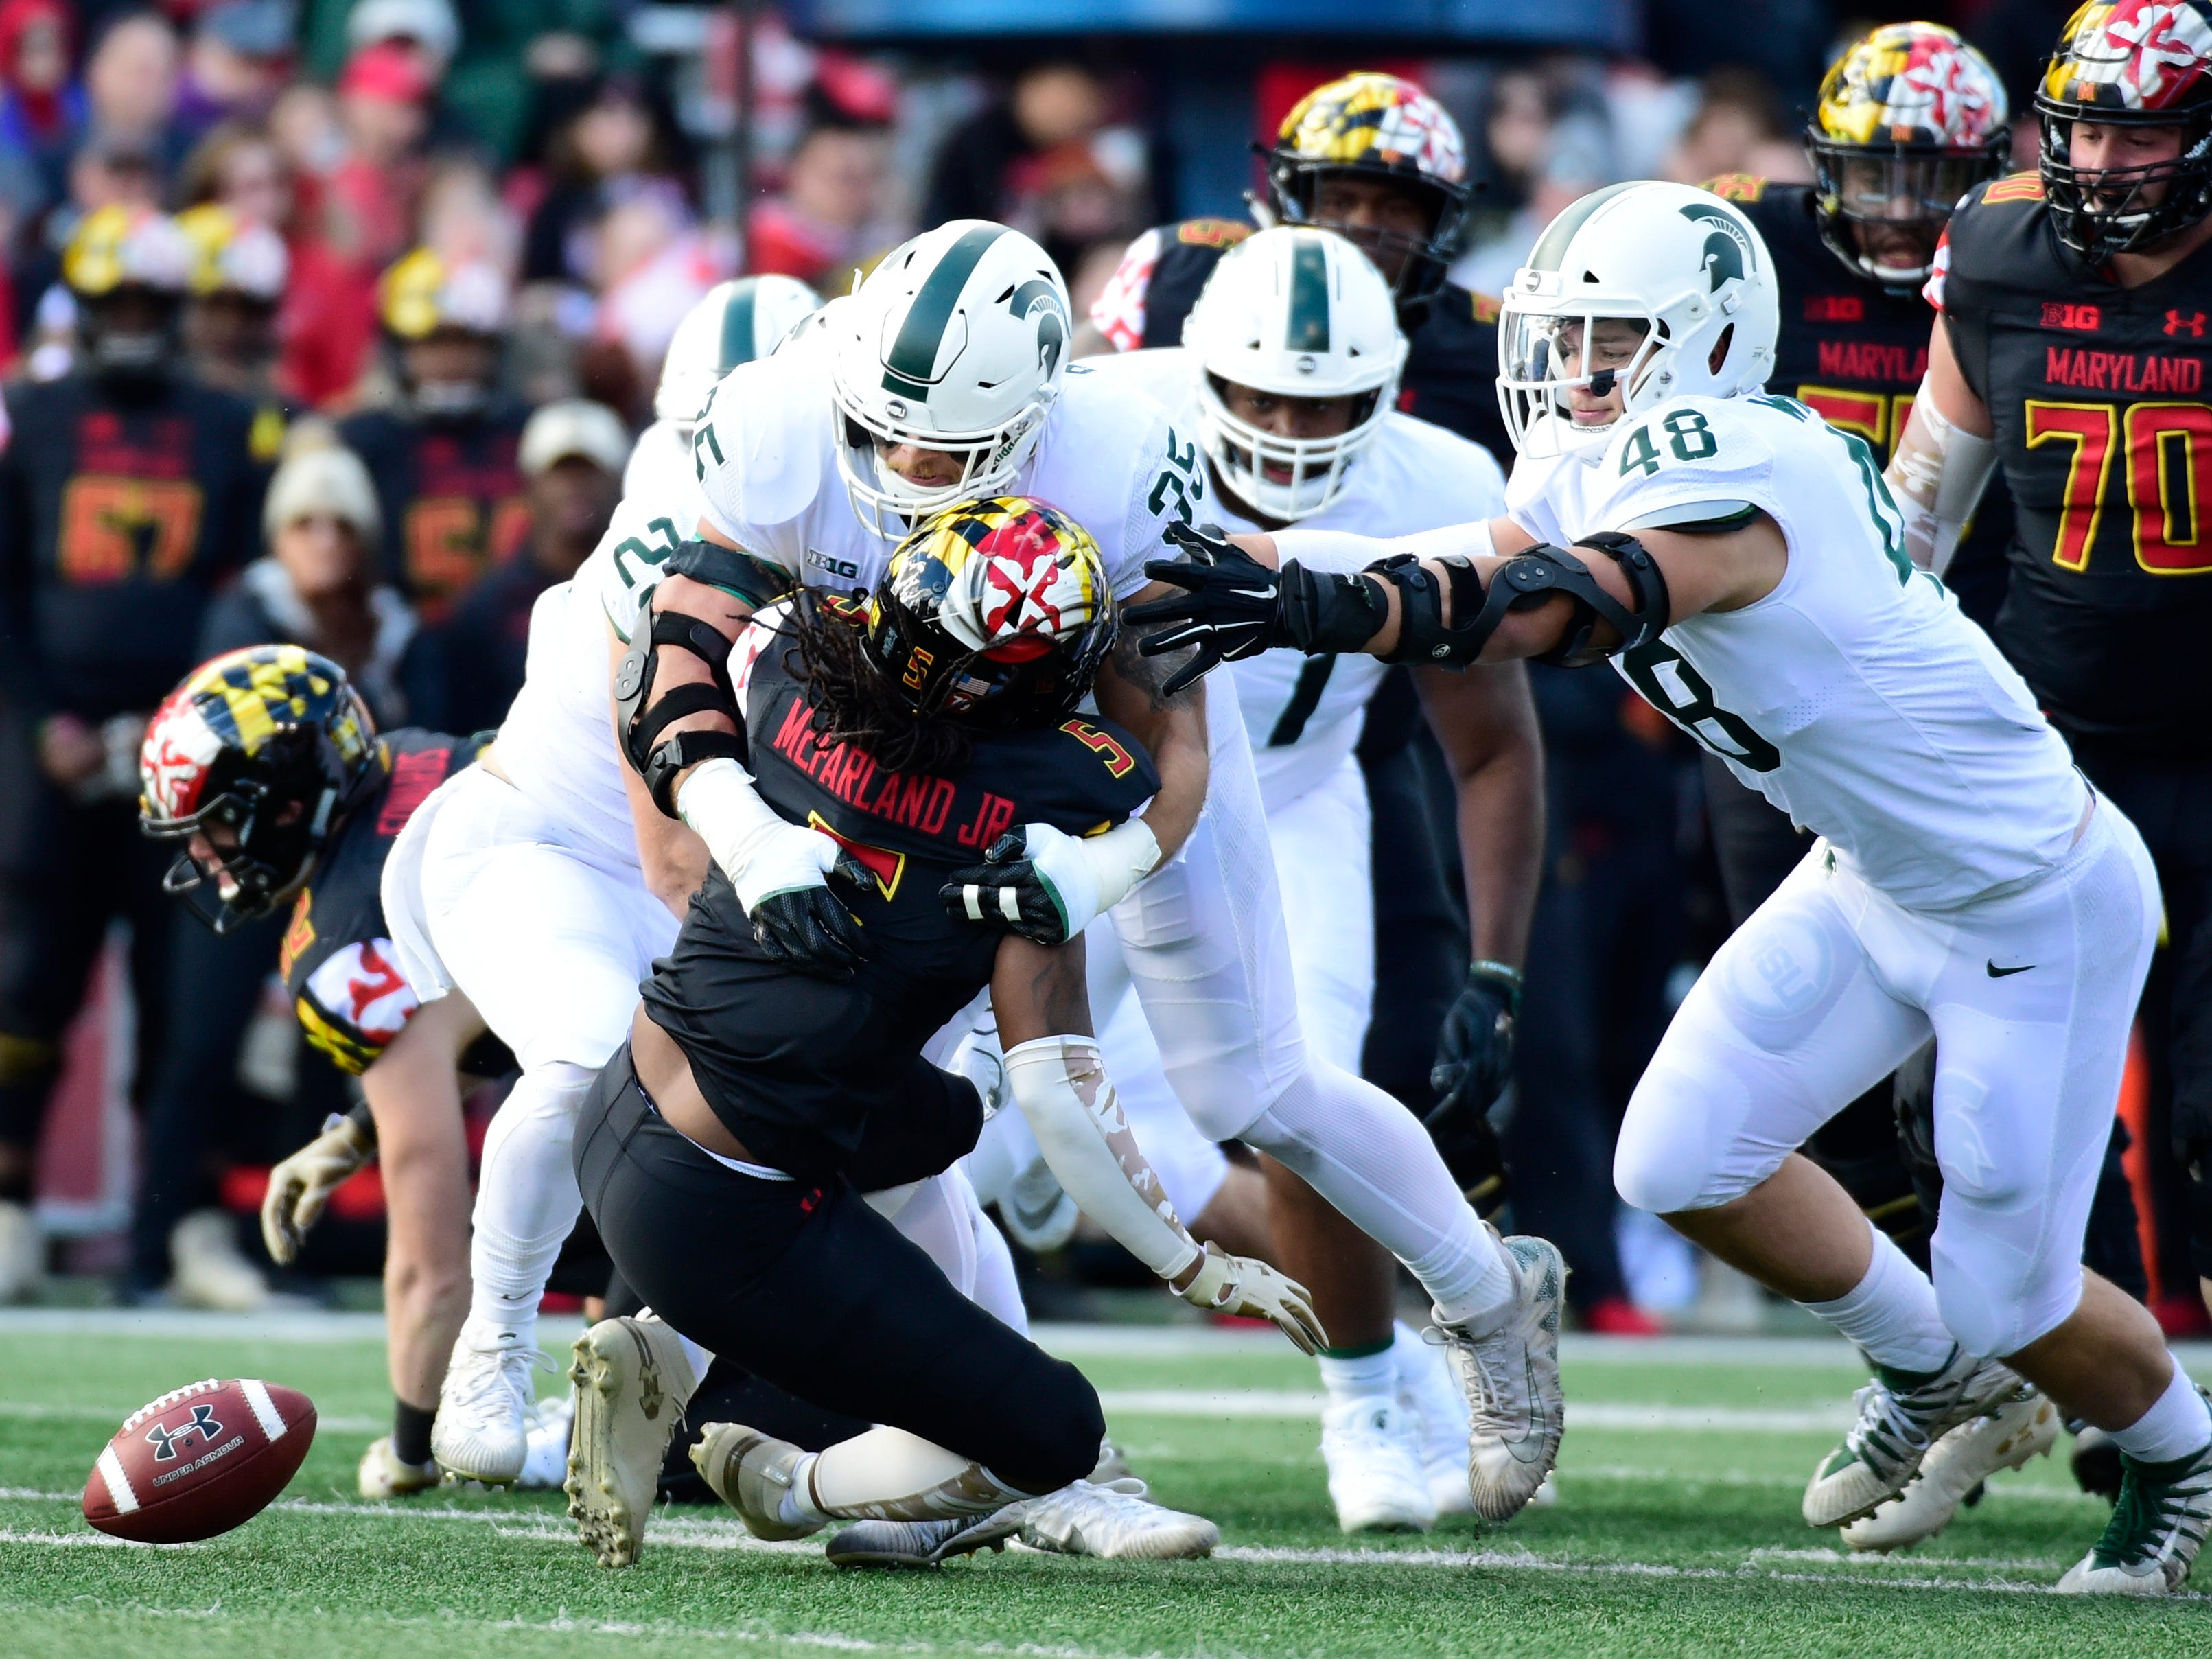 Michigan State Spartans linebacker Joe Bachie (35) hits Maryland Terrapins running back Anthony McFarland (5) behind the line of scrimmage causing a fumble during the first quarter at Capital One Field at Maryland Stadium.